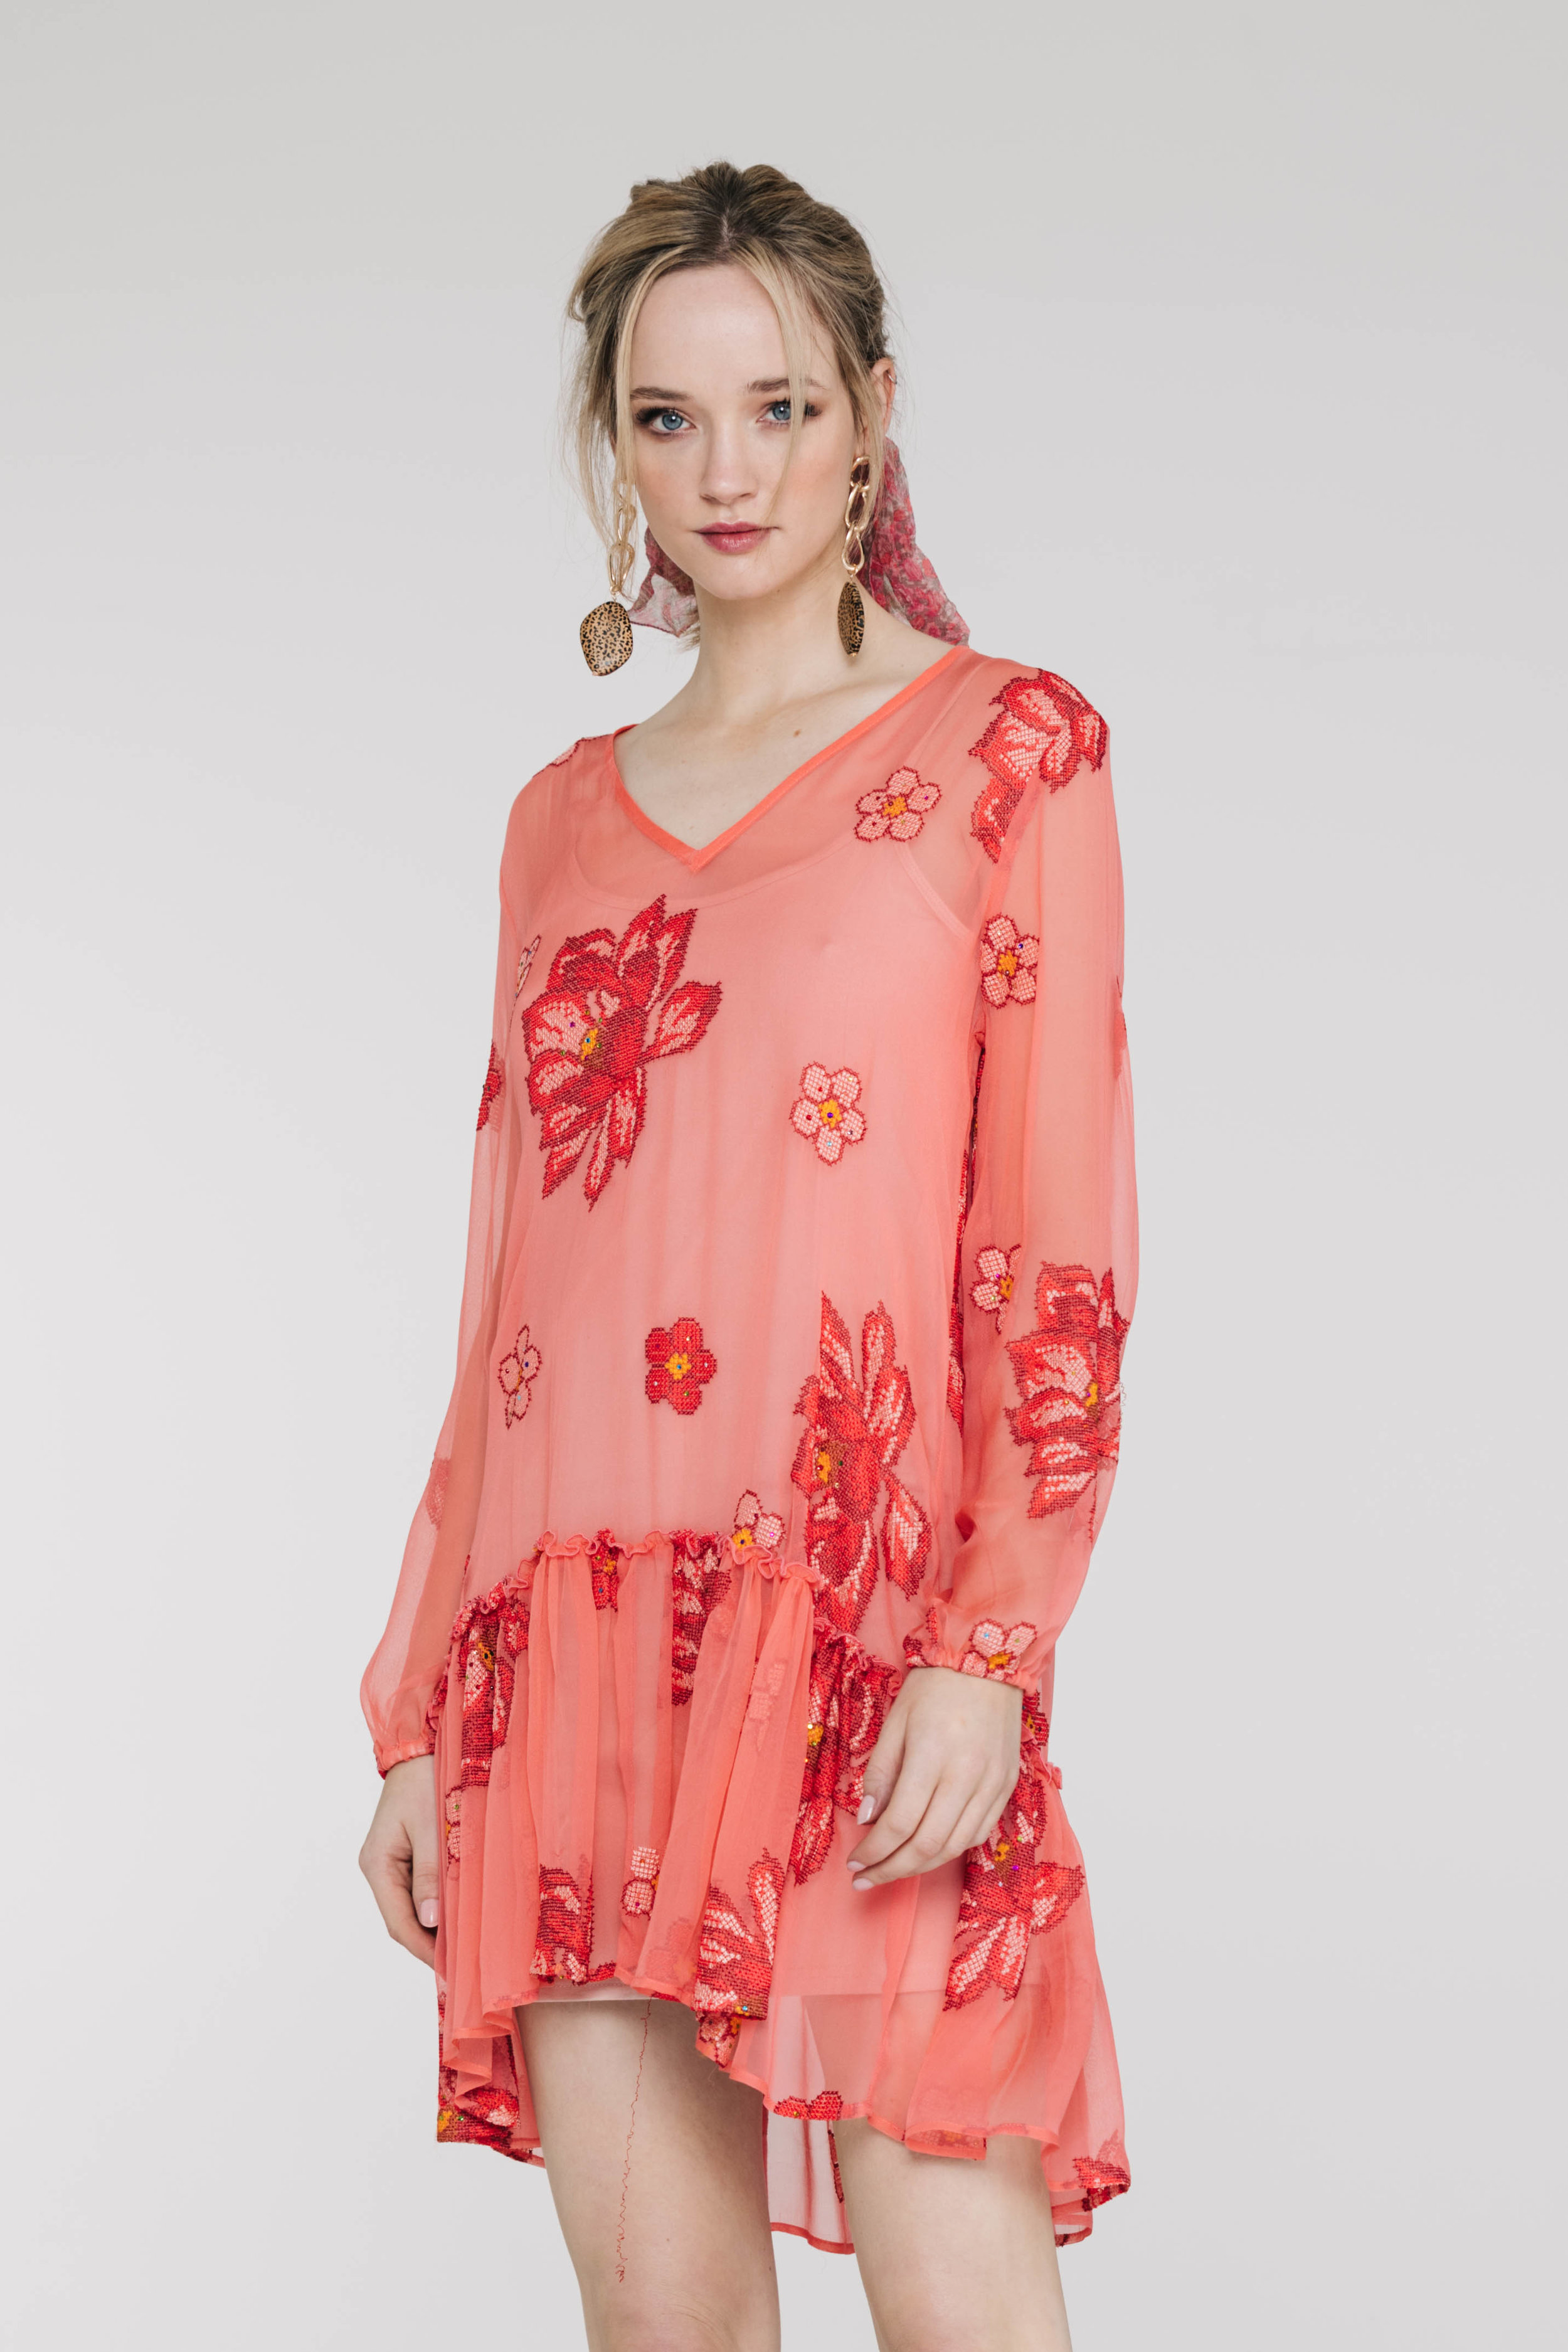 Ruff All Dress 6143P Starry Rose Coral